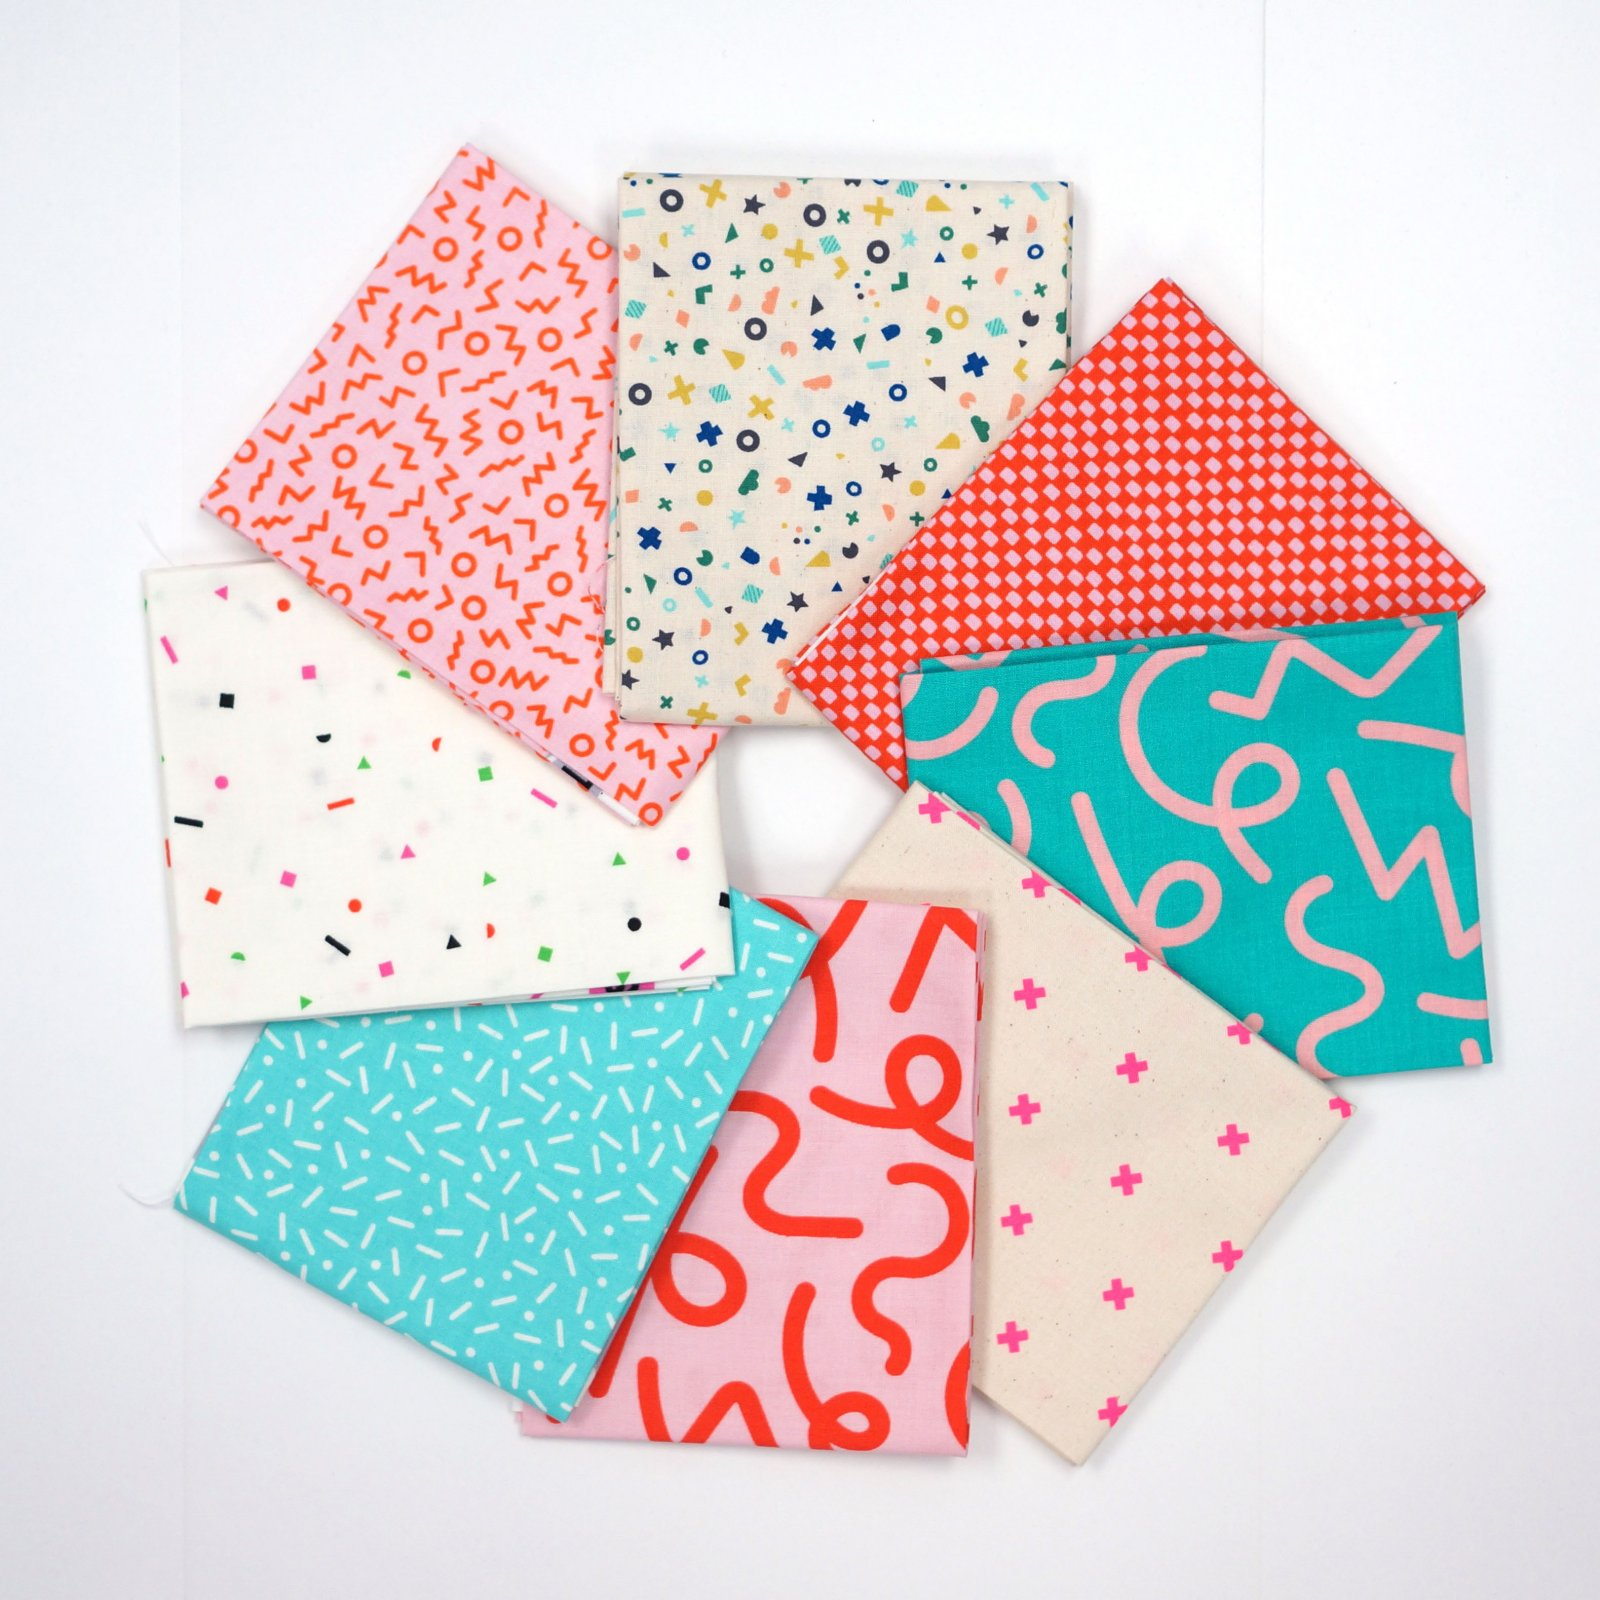 Snap to Grid Remix - Crosscut Sewing Custom 8 Piece Fat Quarter Box